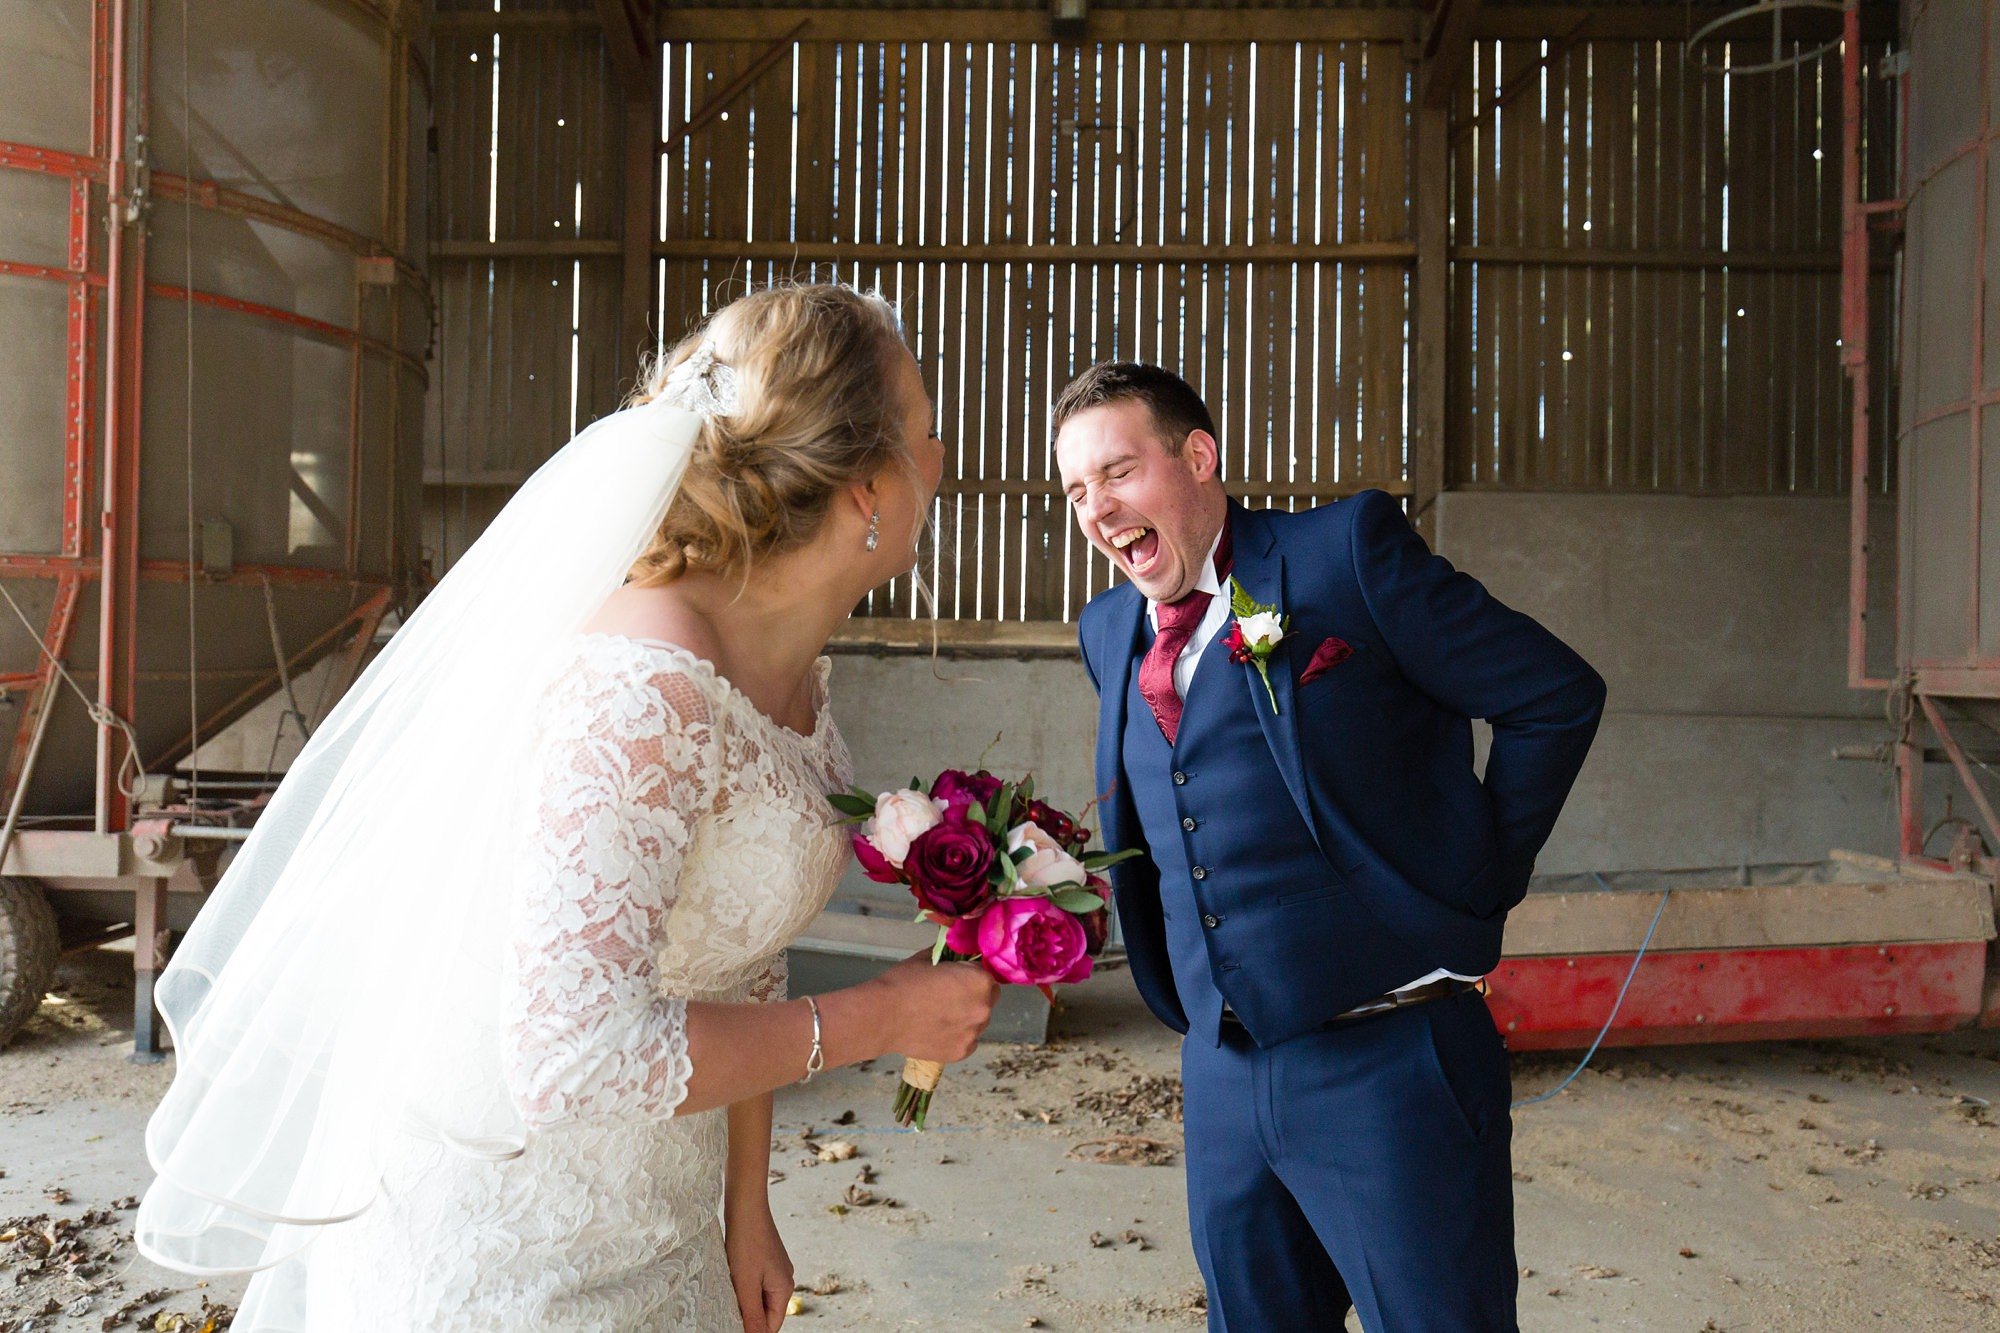 Bride & groom laughing in the barn at The Normans wedding venue in York